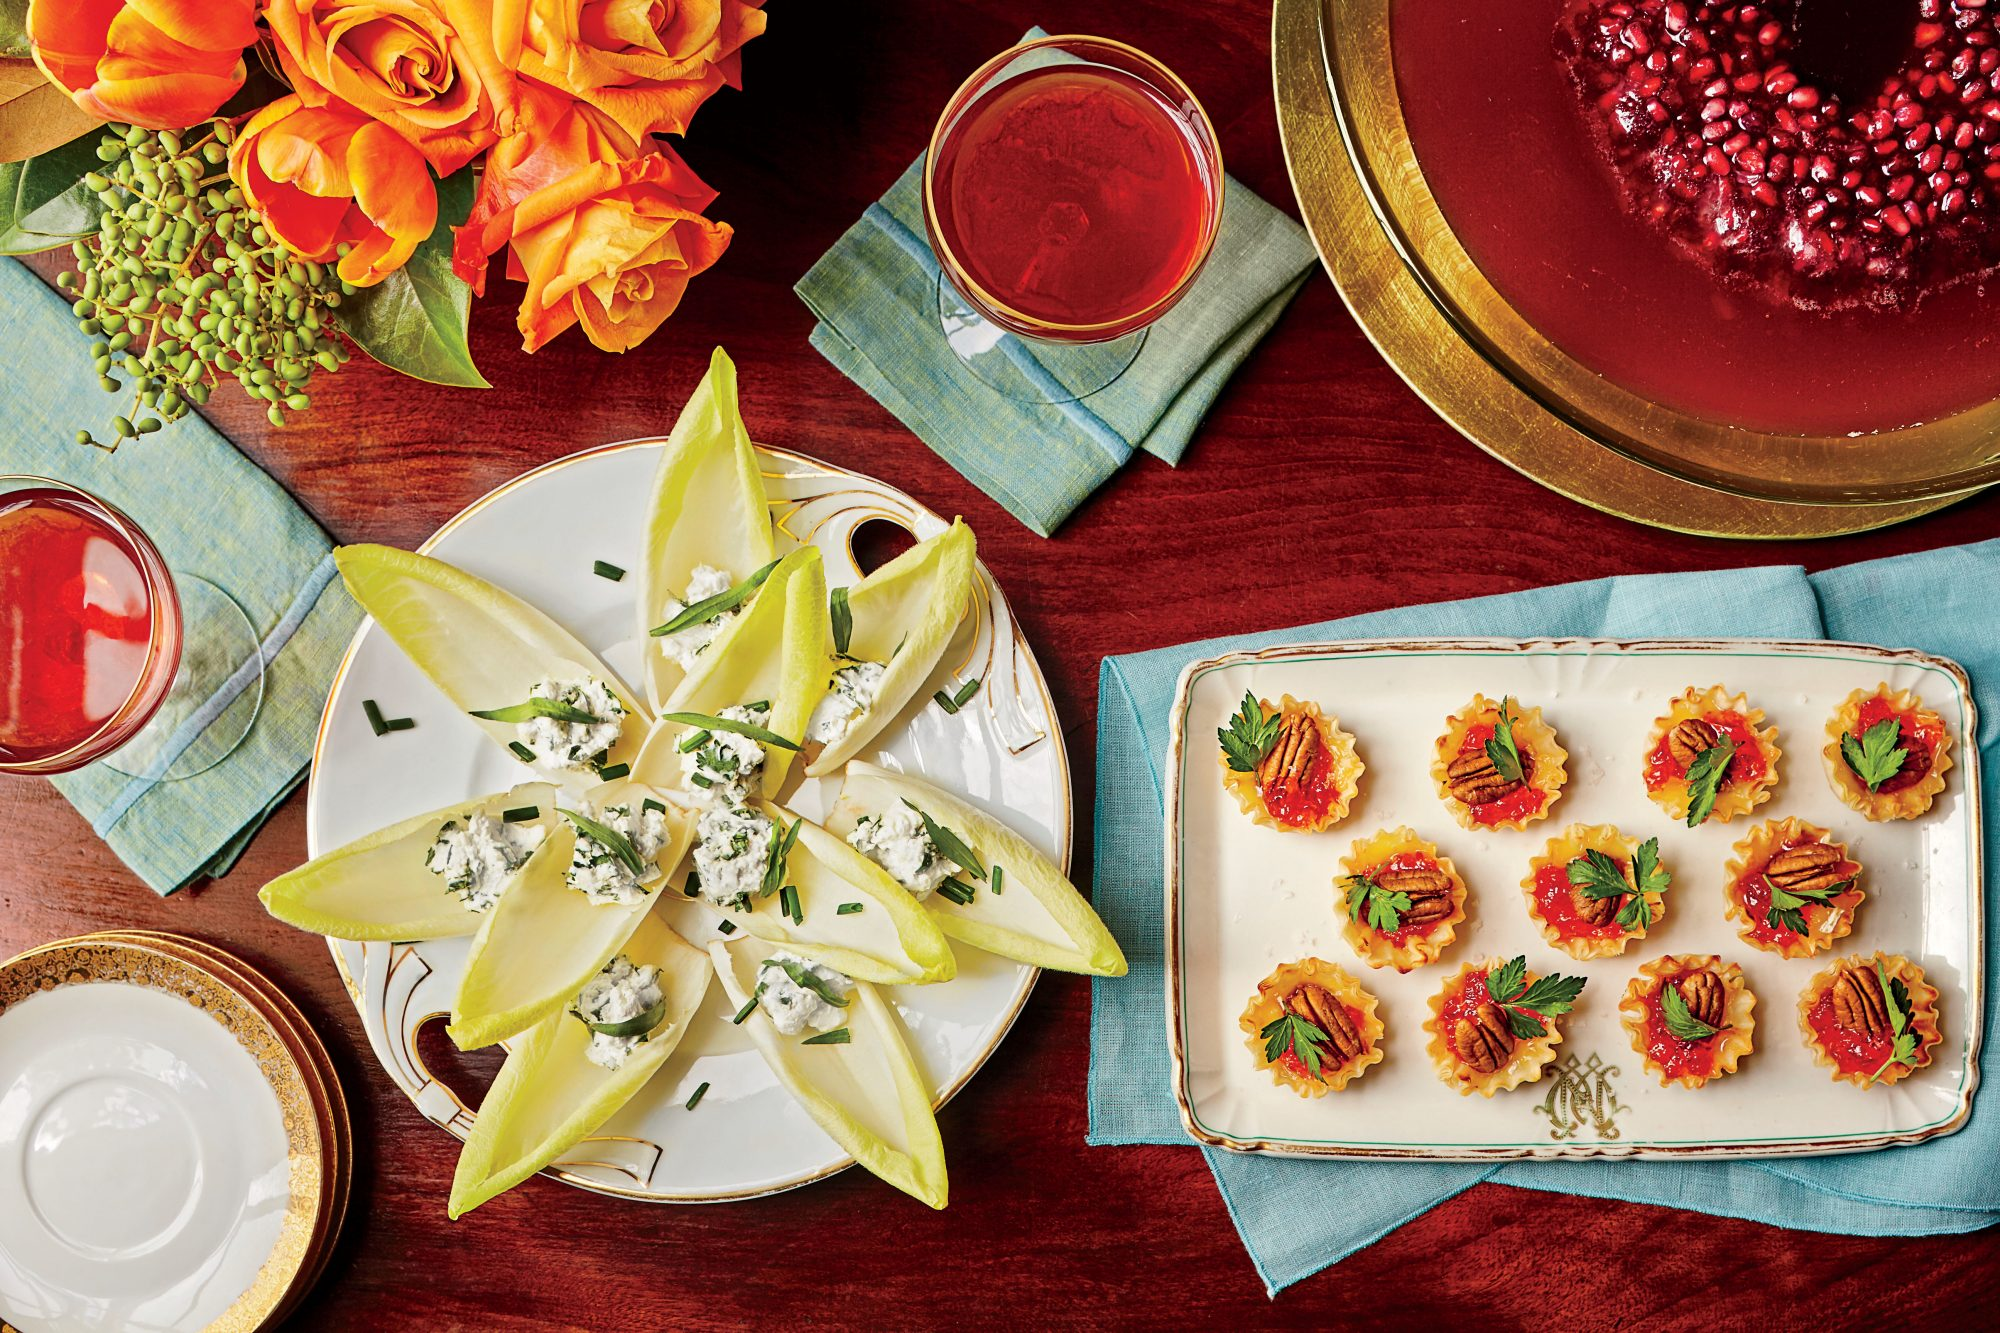 15-Minute Holiday Recipes to the Rescue